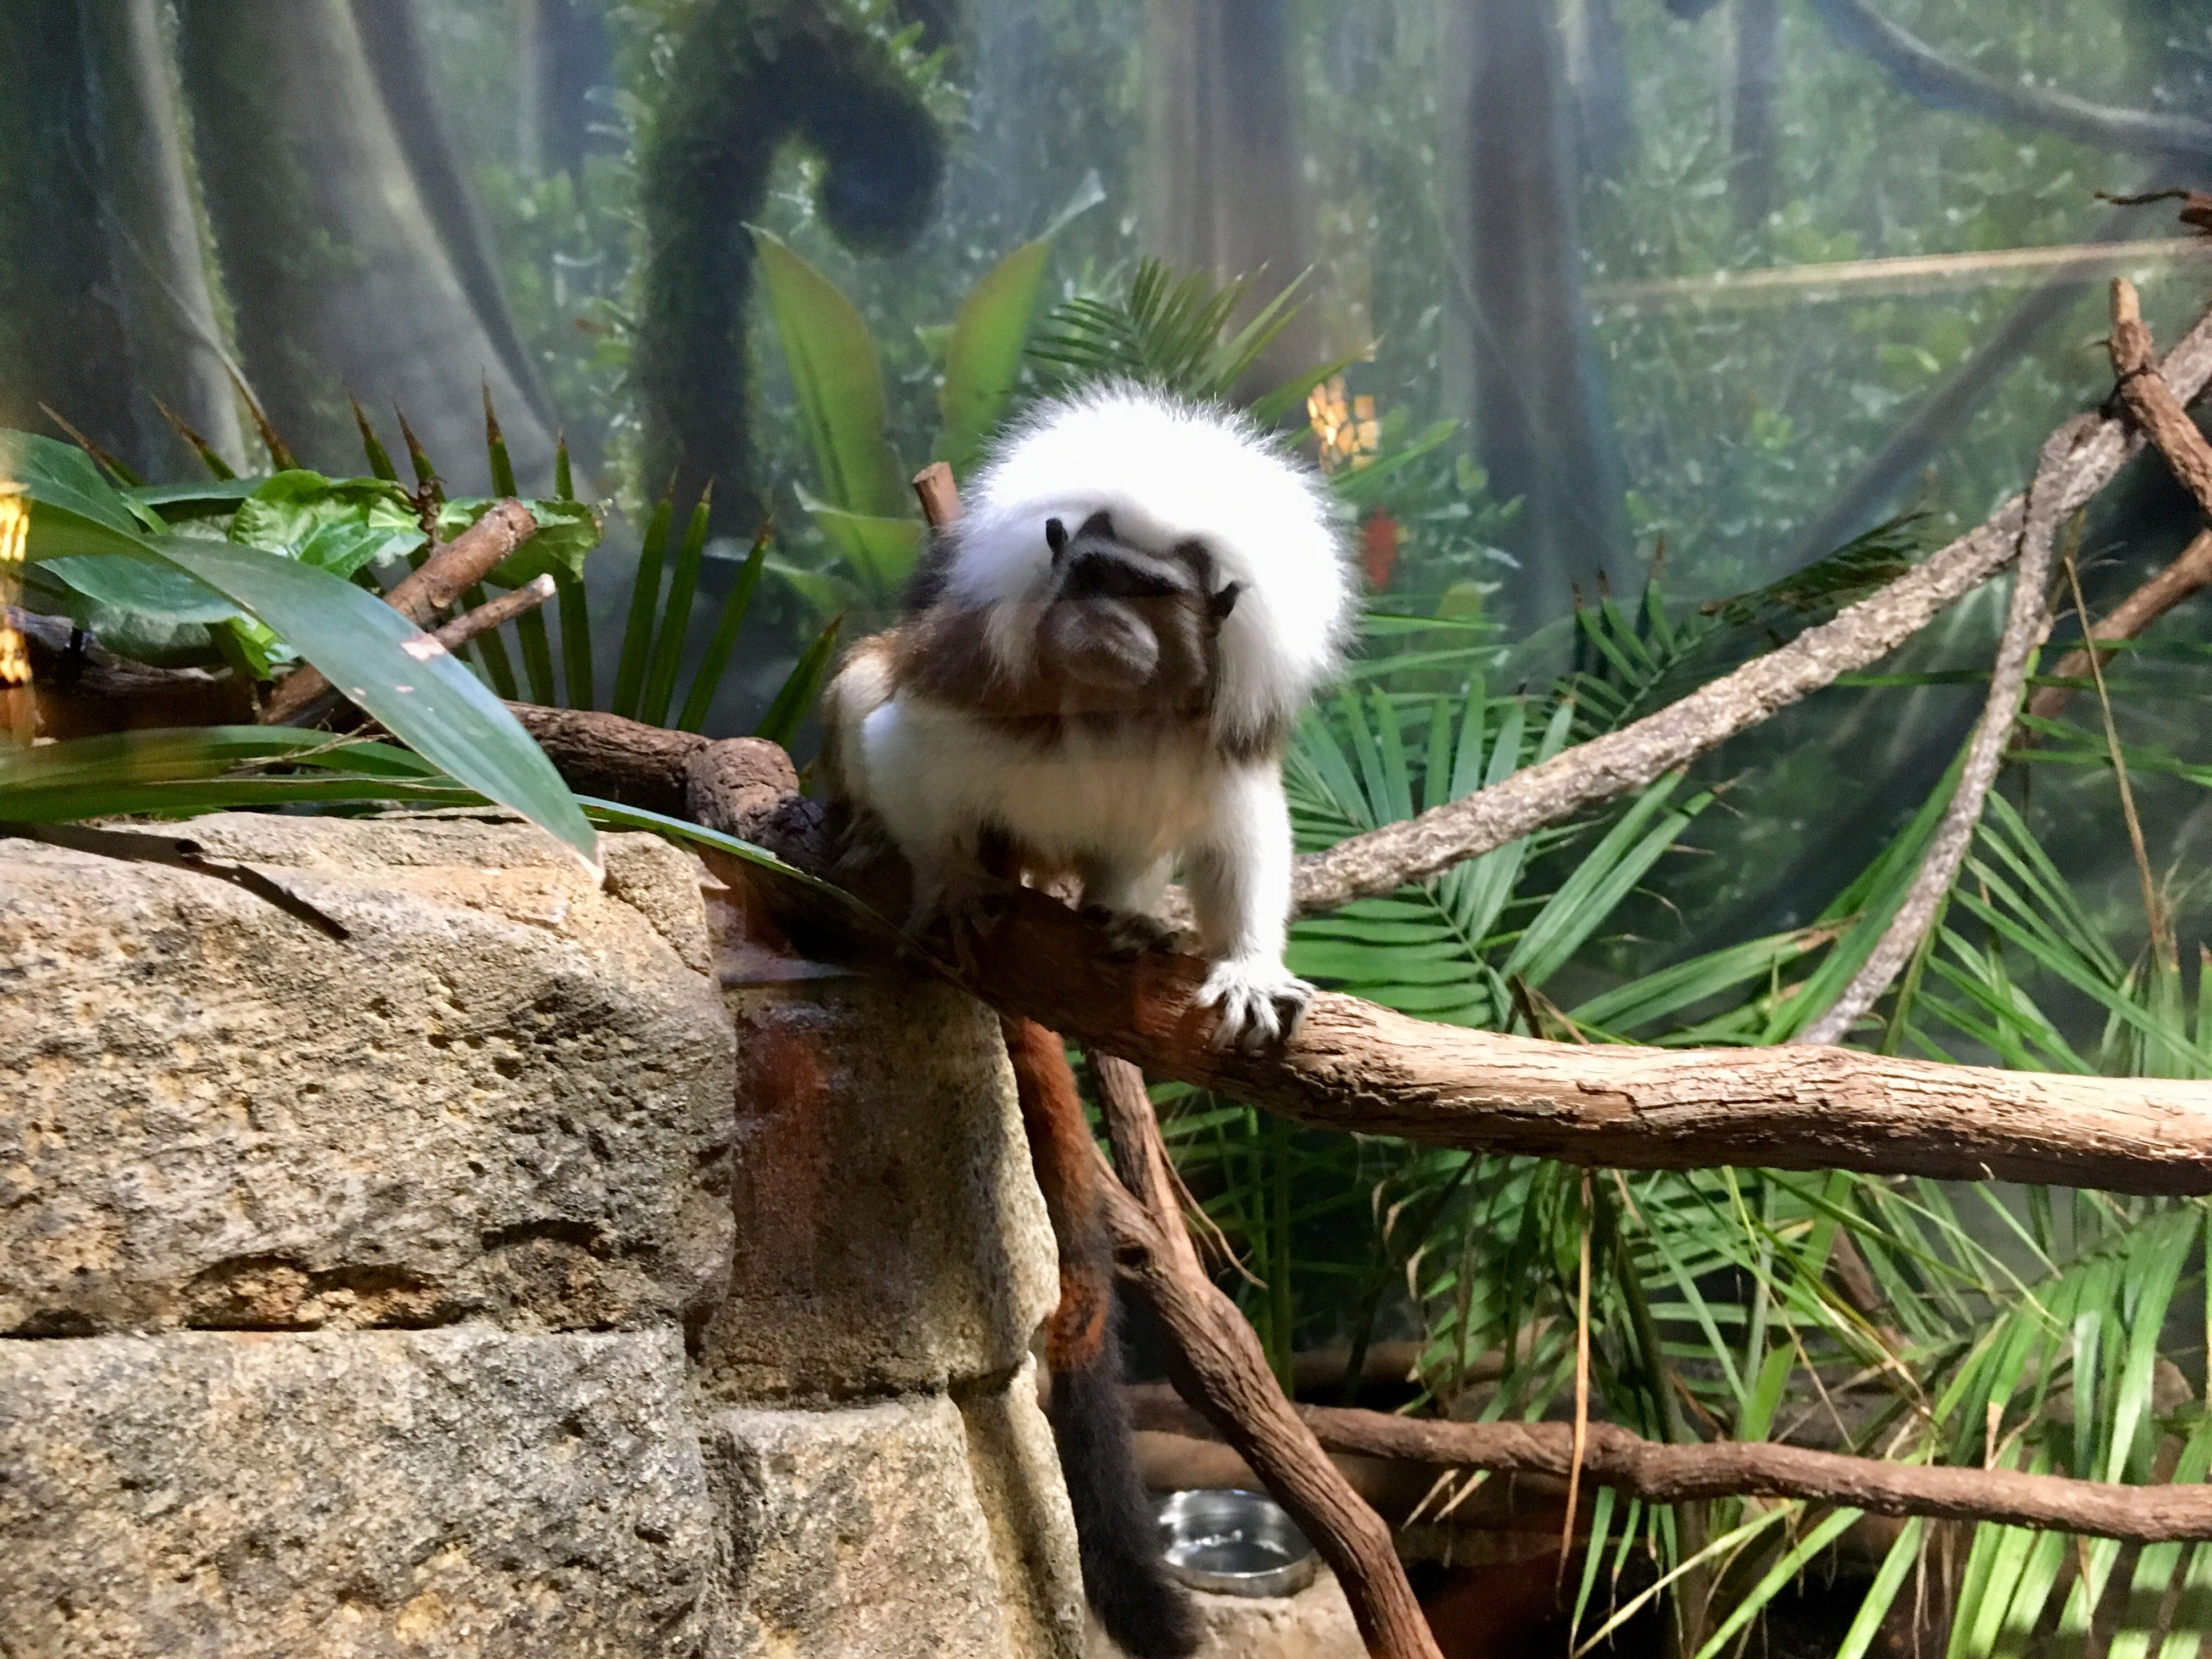 One of the cotton-top tamarin monkeys in an exhibit inside a women's restroom at Nashville Zoo at Grassmere.